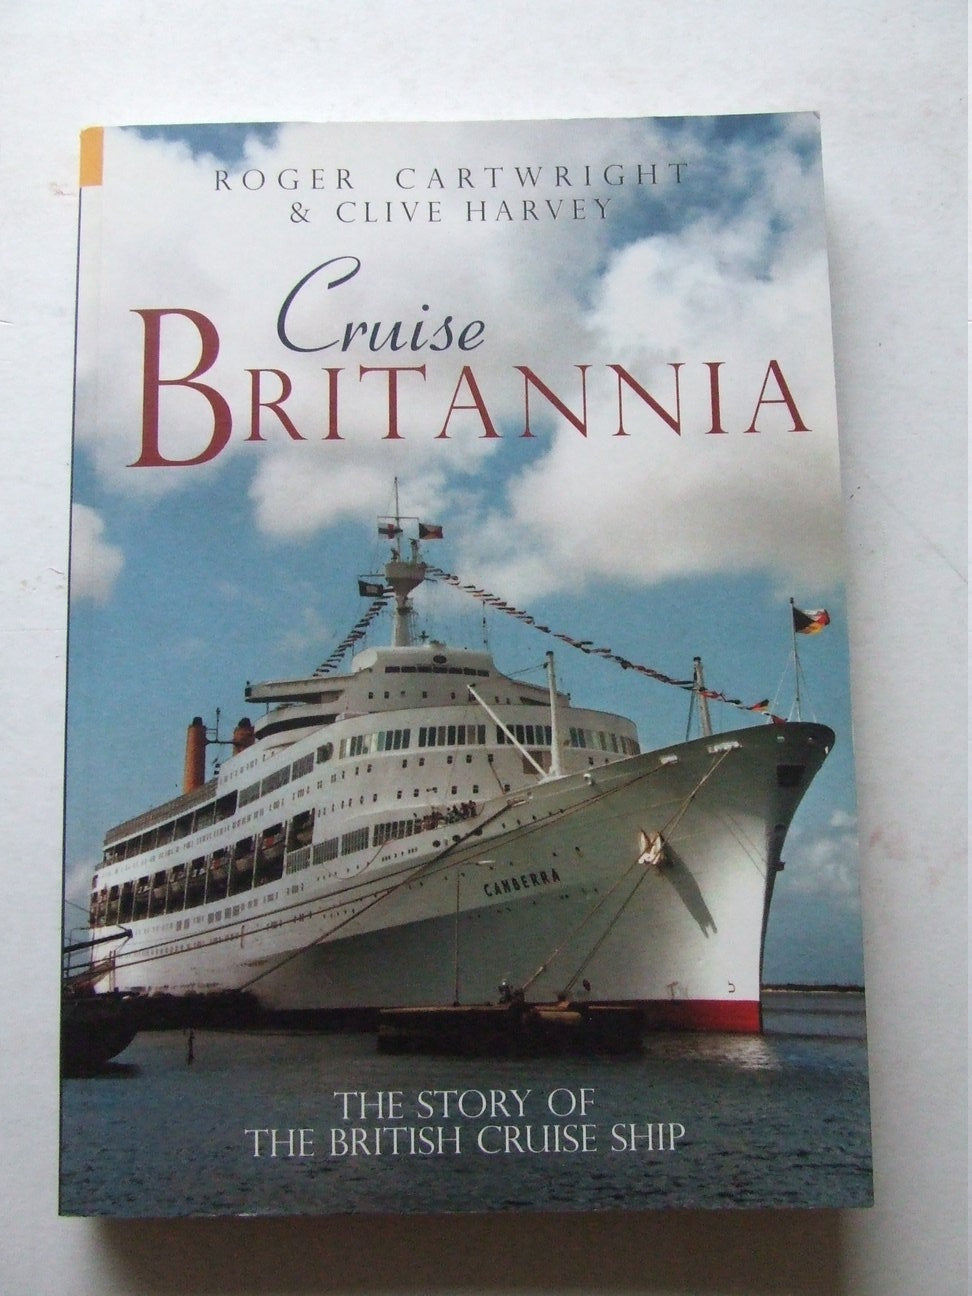 Cruise Britannia, the story of the British cruise ship